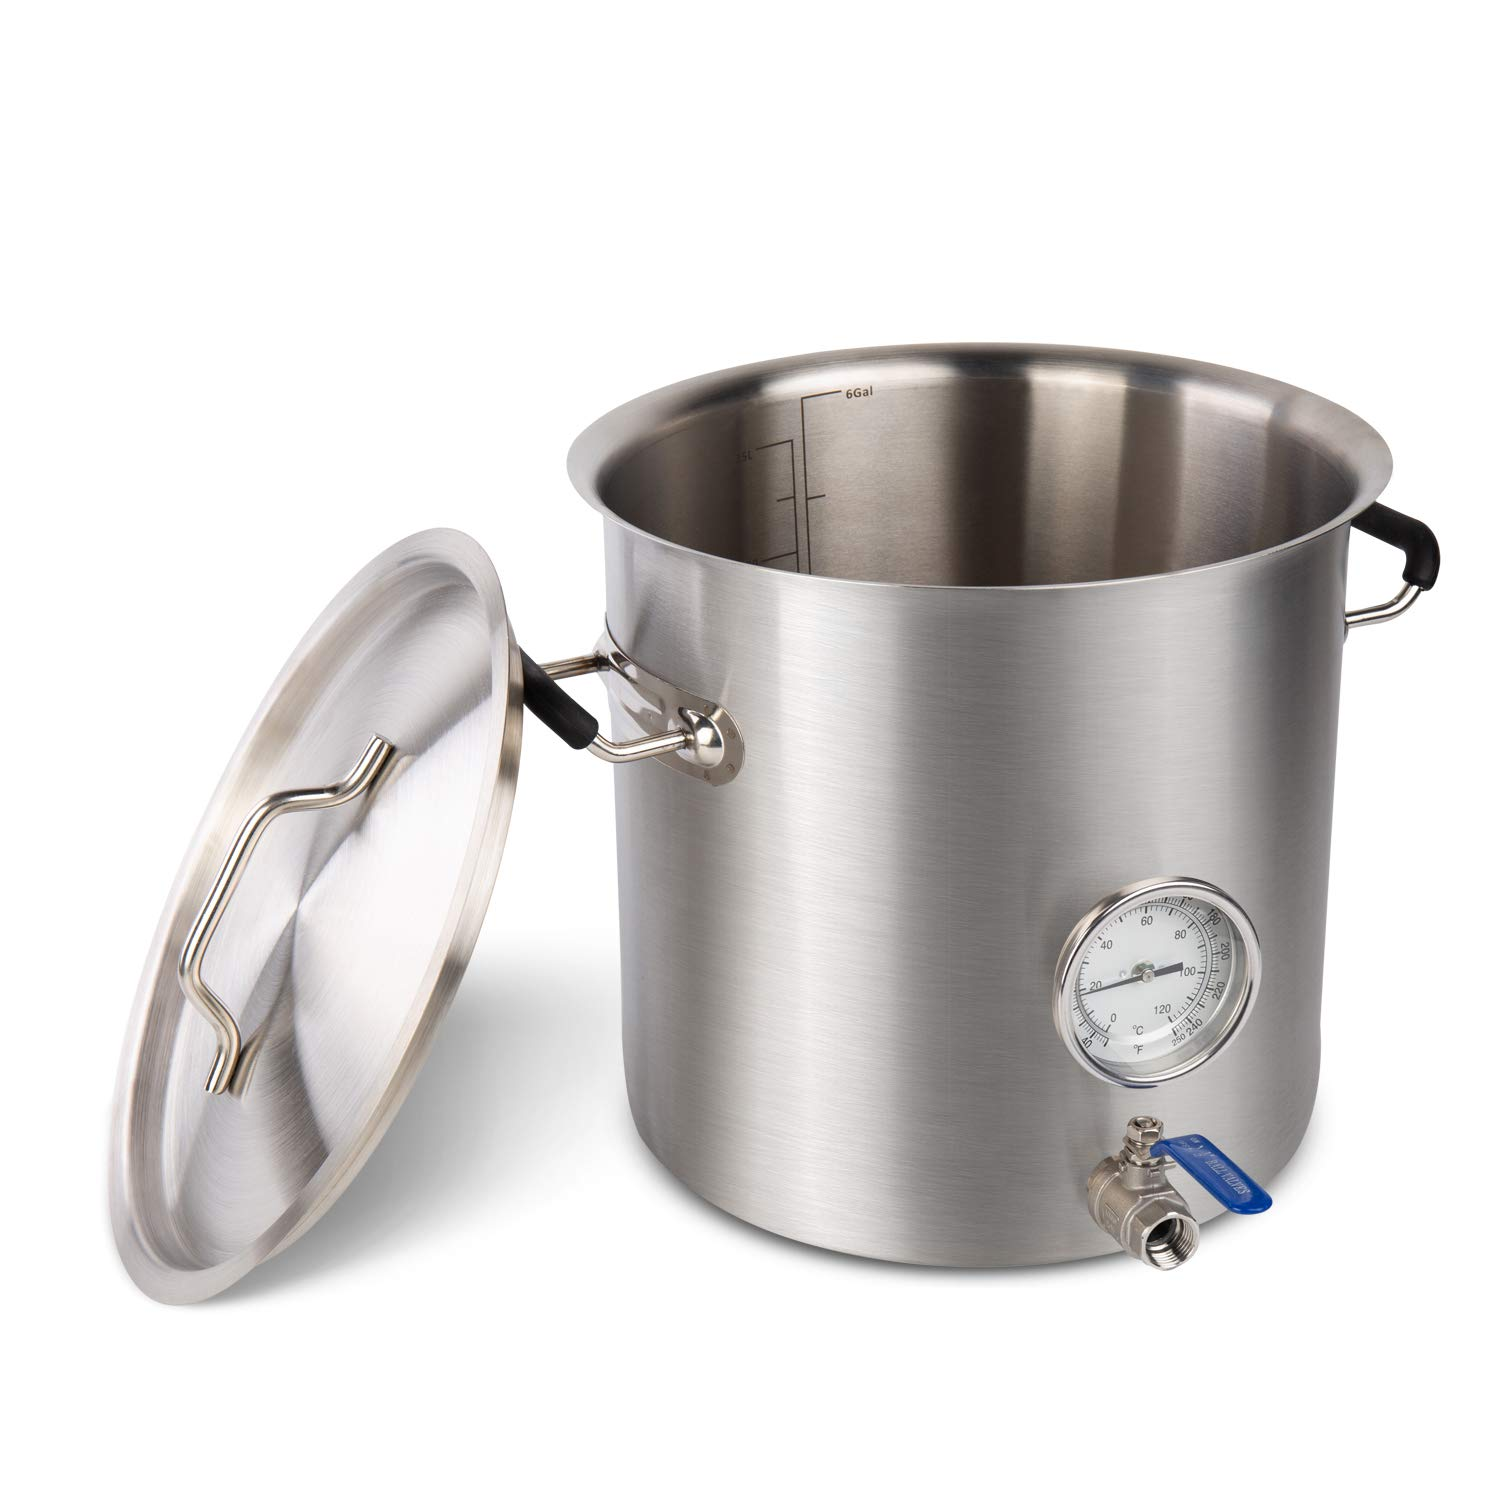 BACOENG Stainless Steel Home Brew Kettle Stock Pot (Weldless Fittings) (25 QT/ 6 Gal)